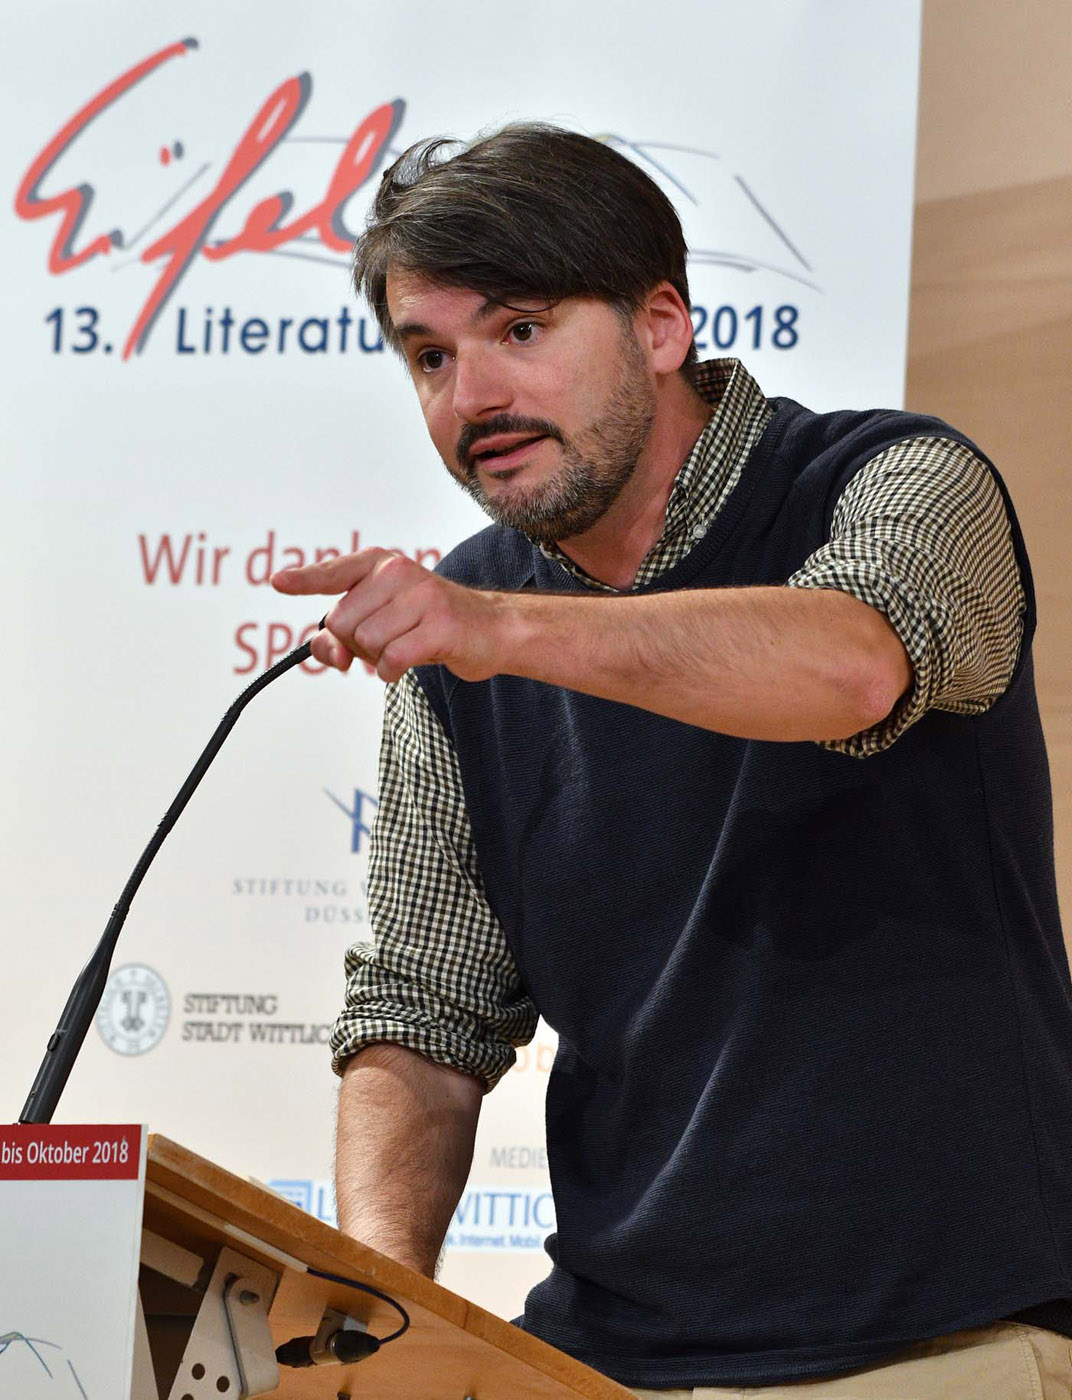 Saša Stanišić am 25. Mai 2018 in Wittlich